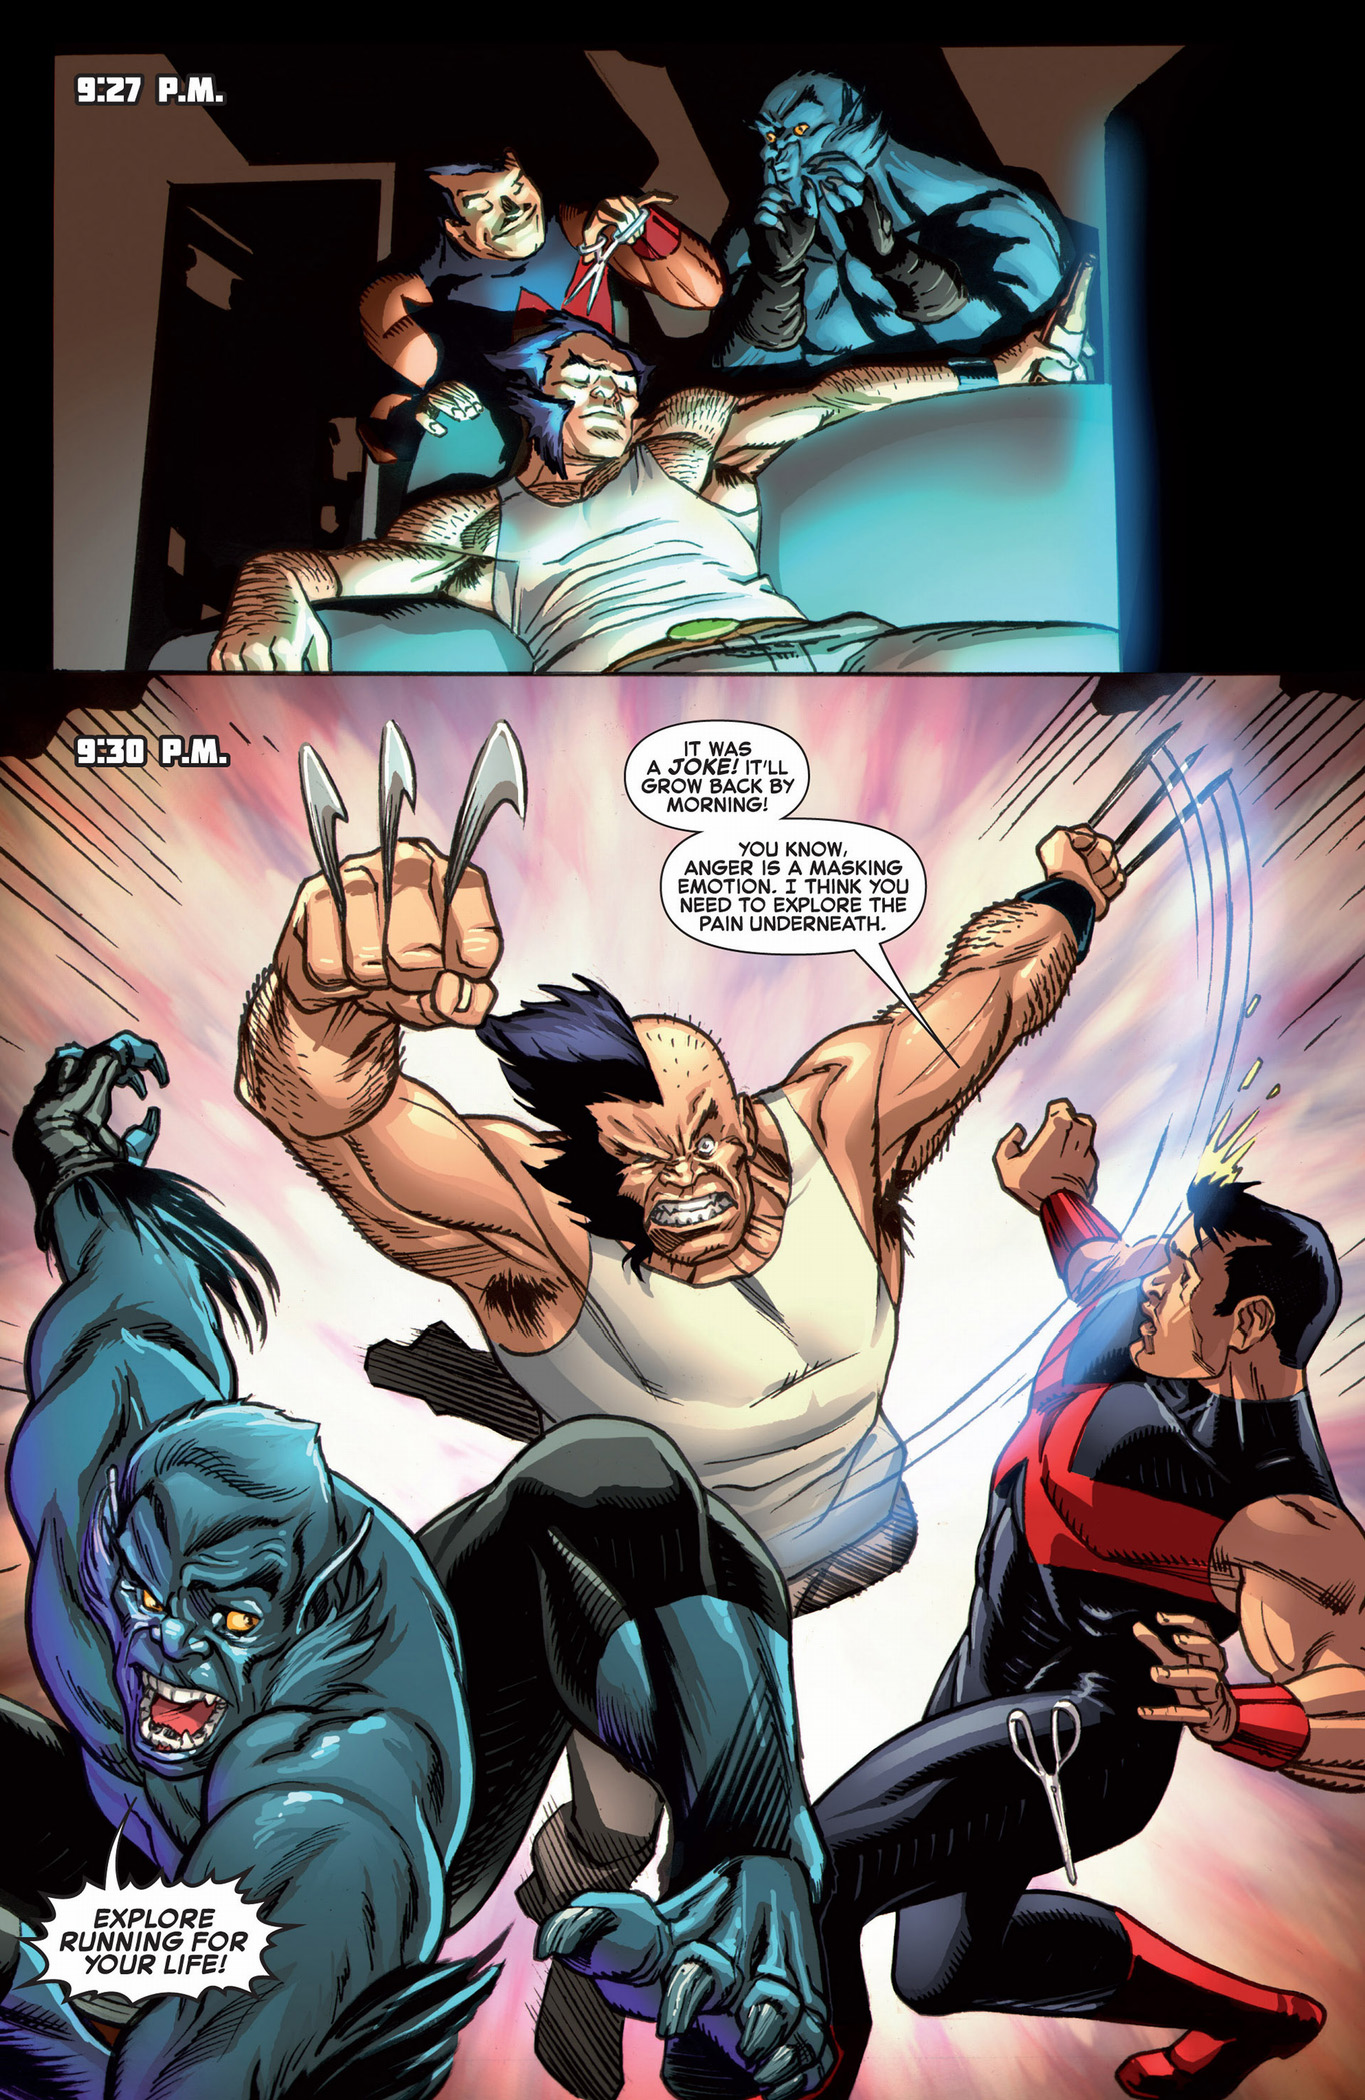 beast and wonder man gives wolverine a haircut